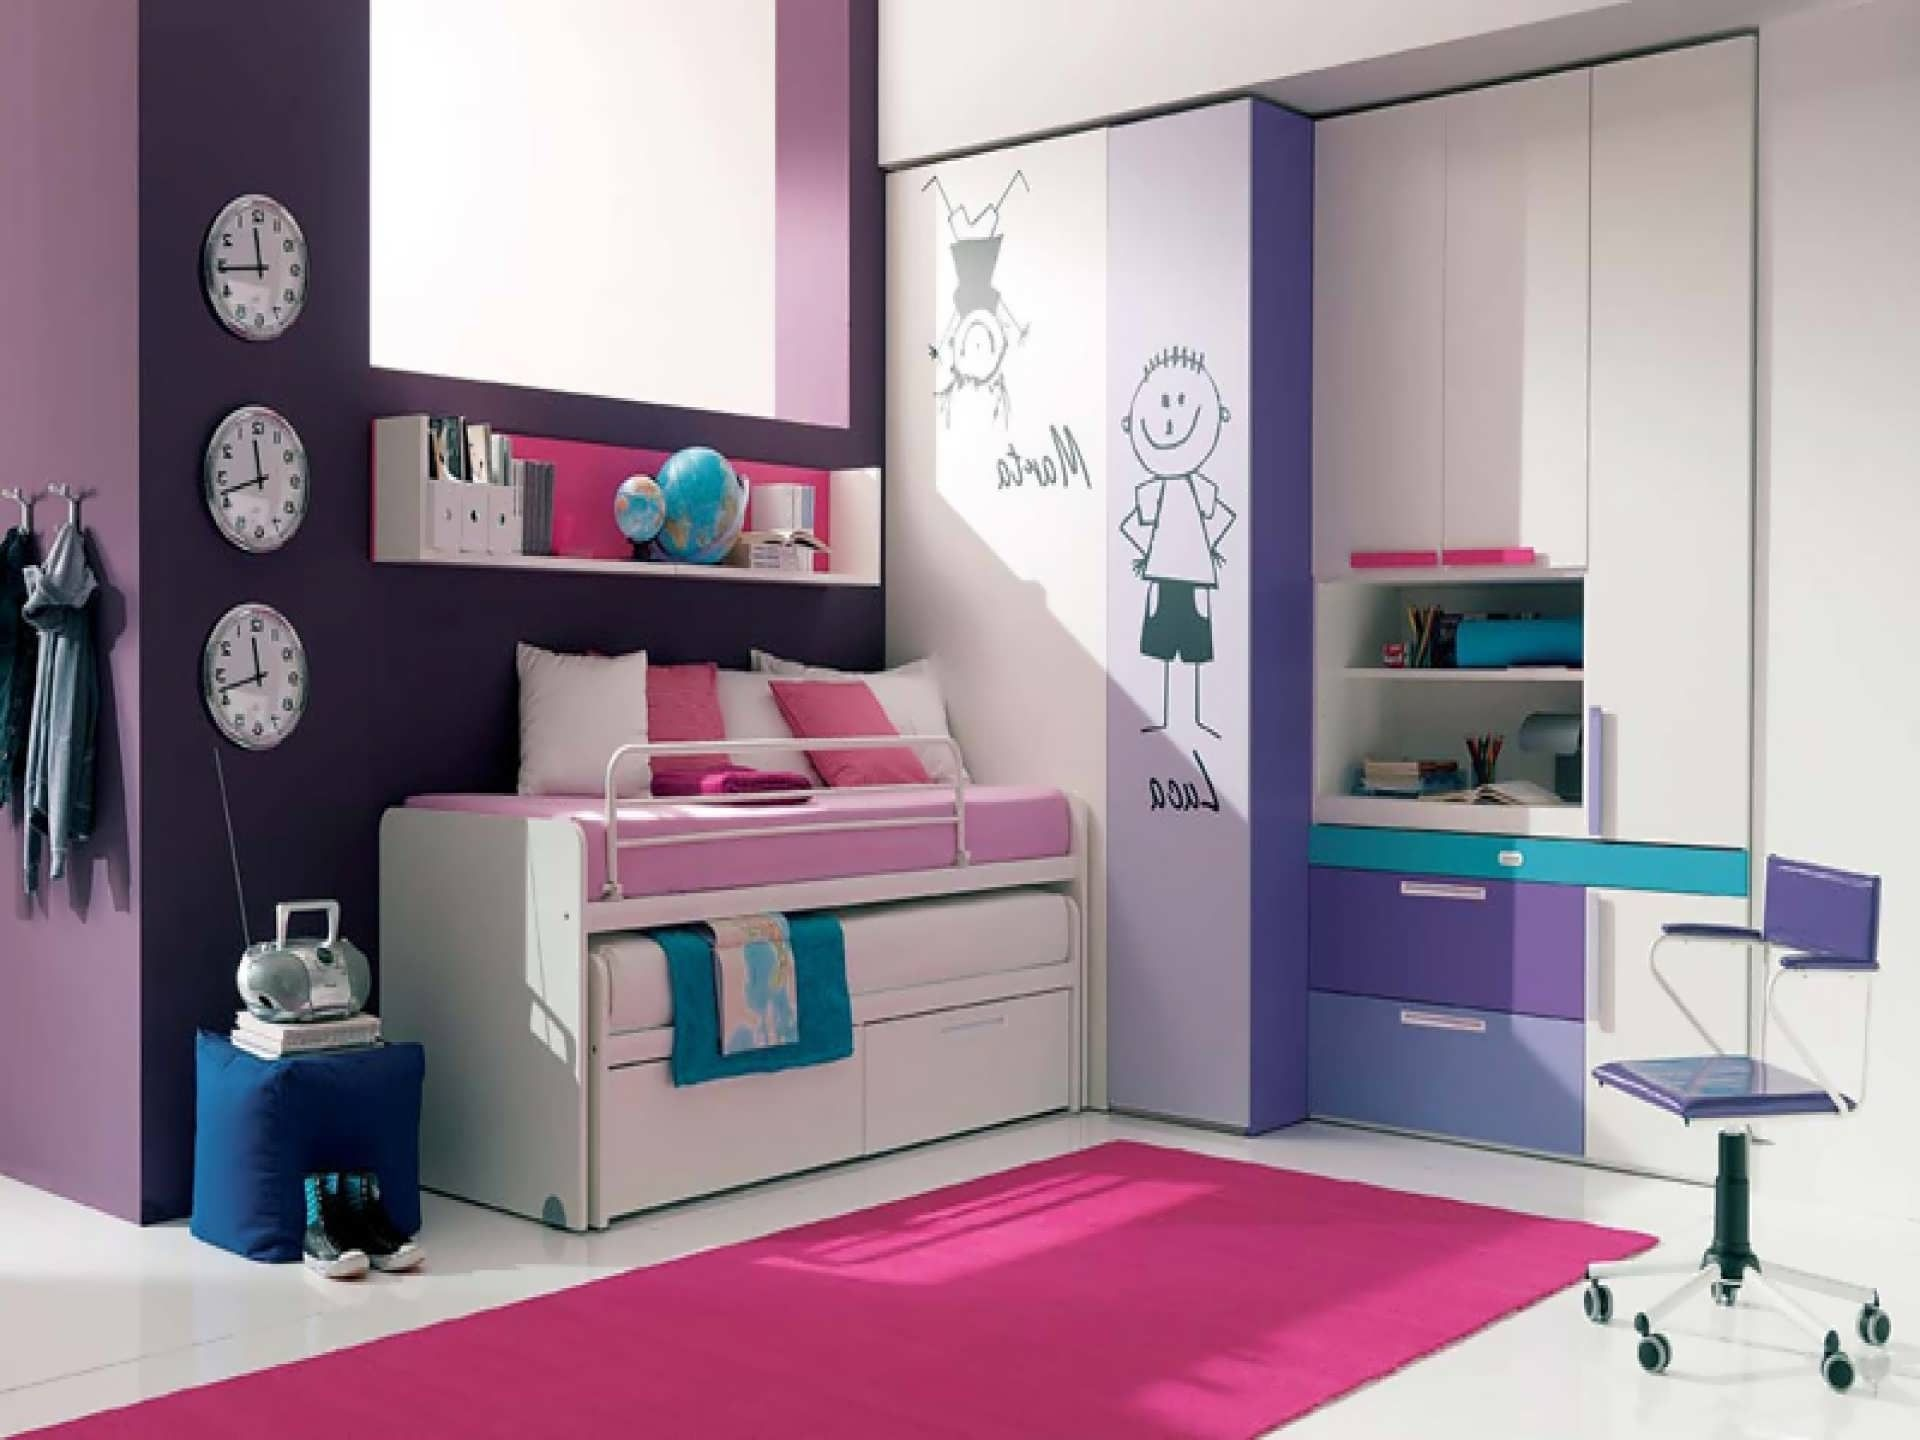 Beautiful Pink Rug For Awesome Room Interior Decorating Ideas On Floor In Modern Kids Bedroom Design With Clock Dark Purple Wall Paint